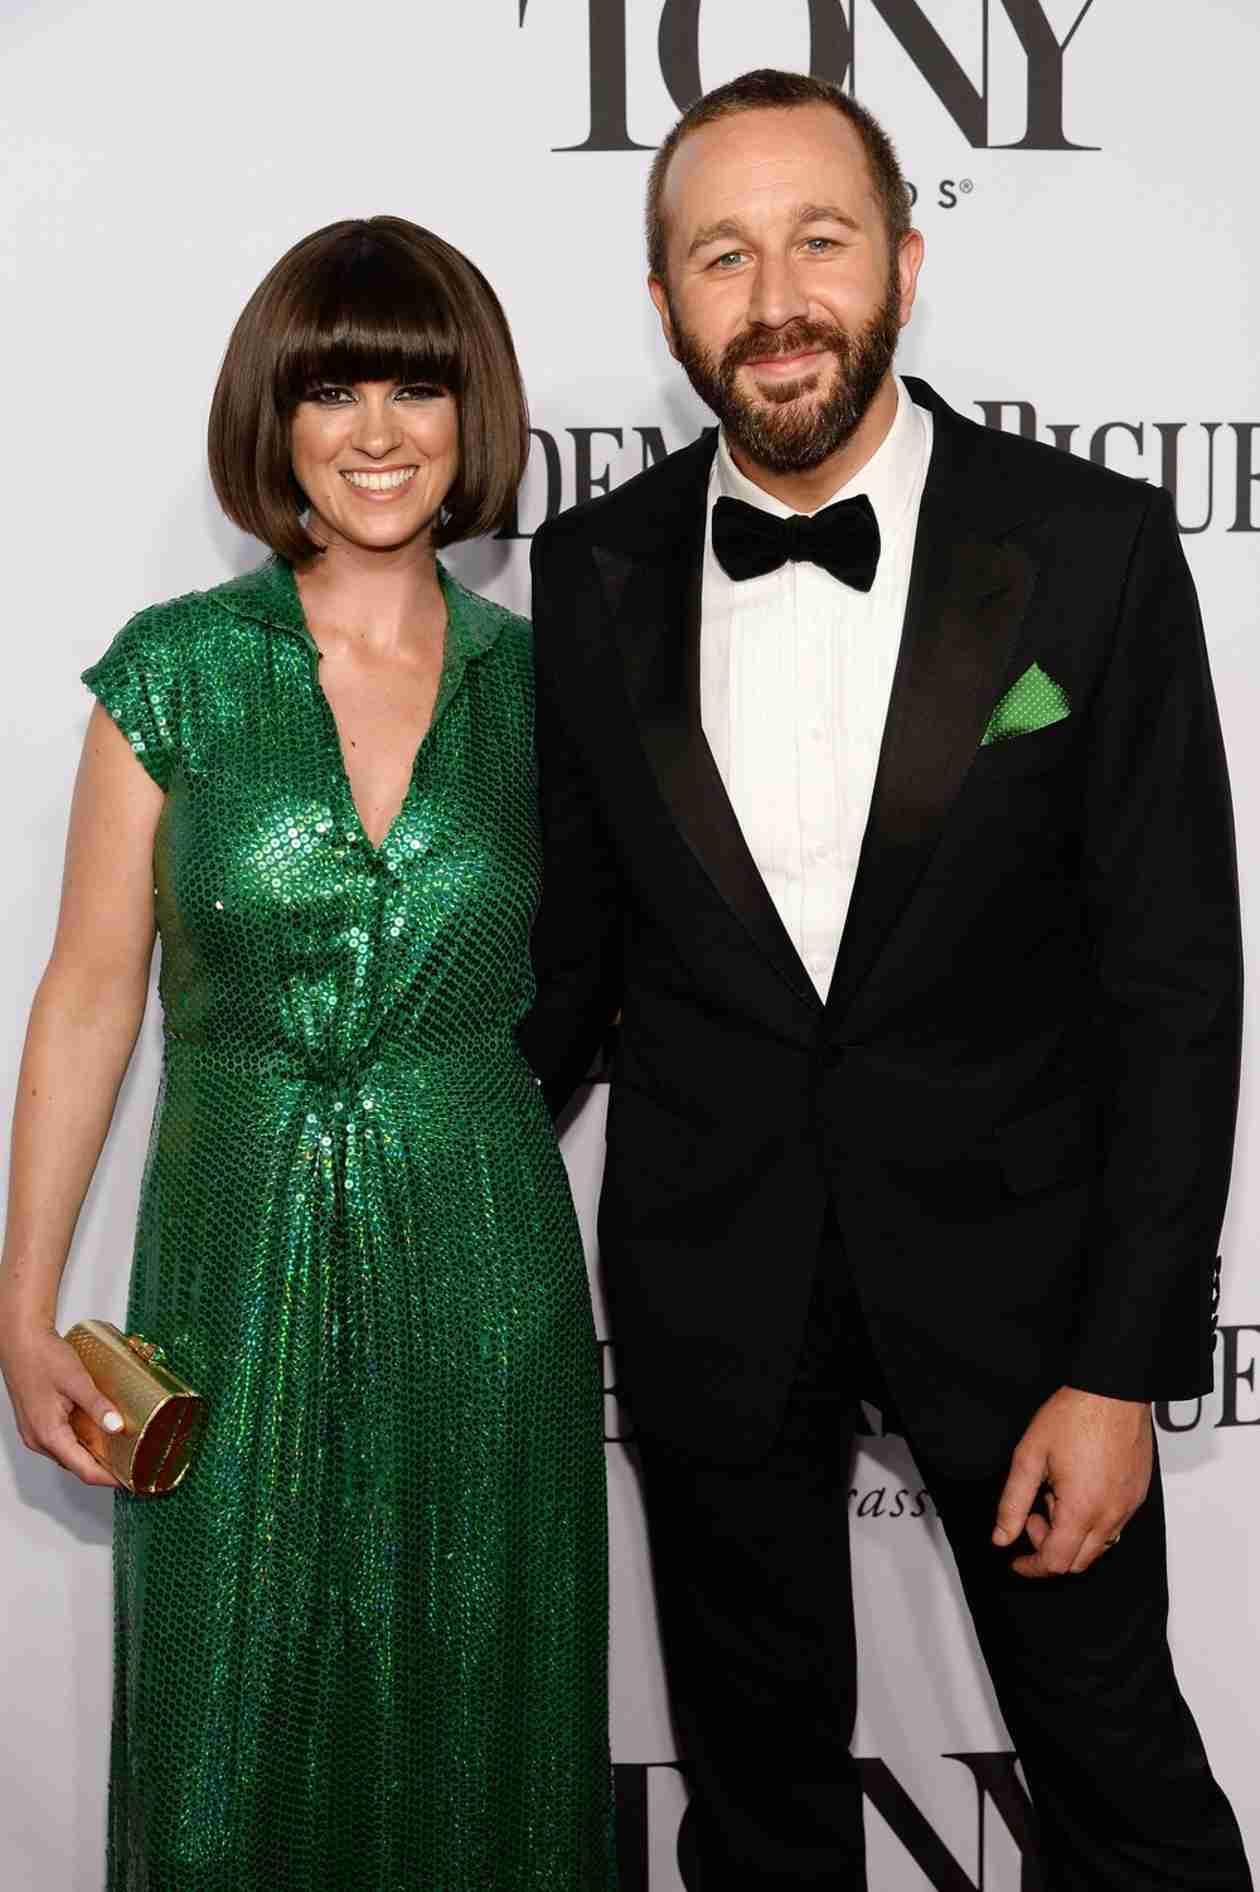 Chris O'Dowd and Wife Dawn Reveal They're Expecting During Their ALS Clip! (VIDEO)